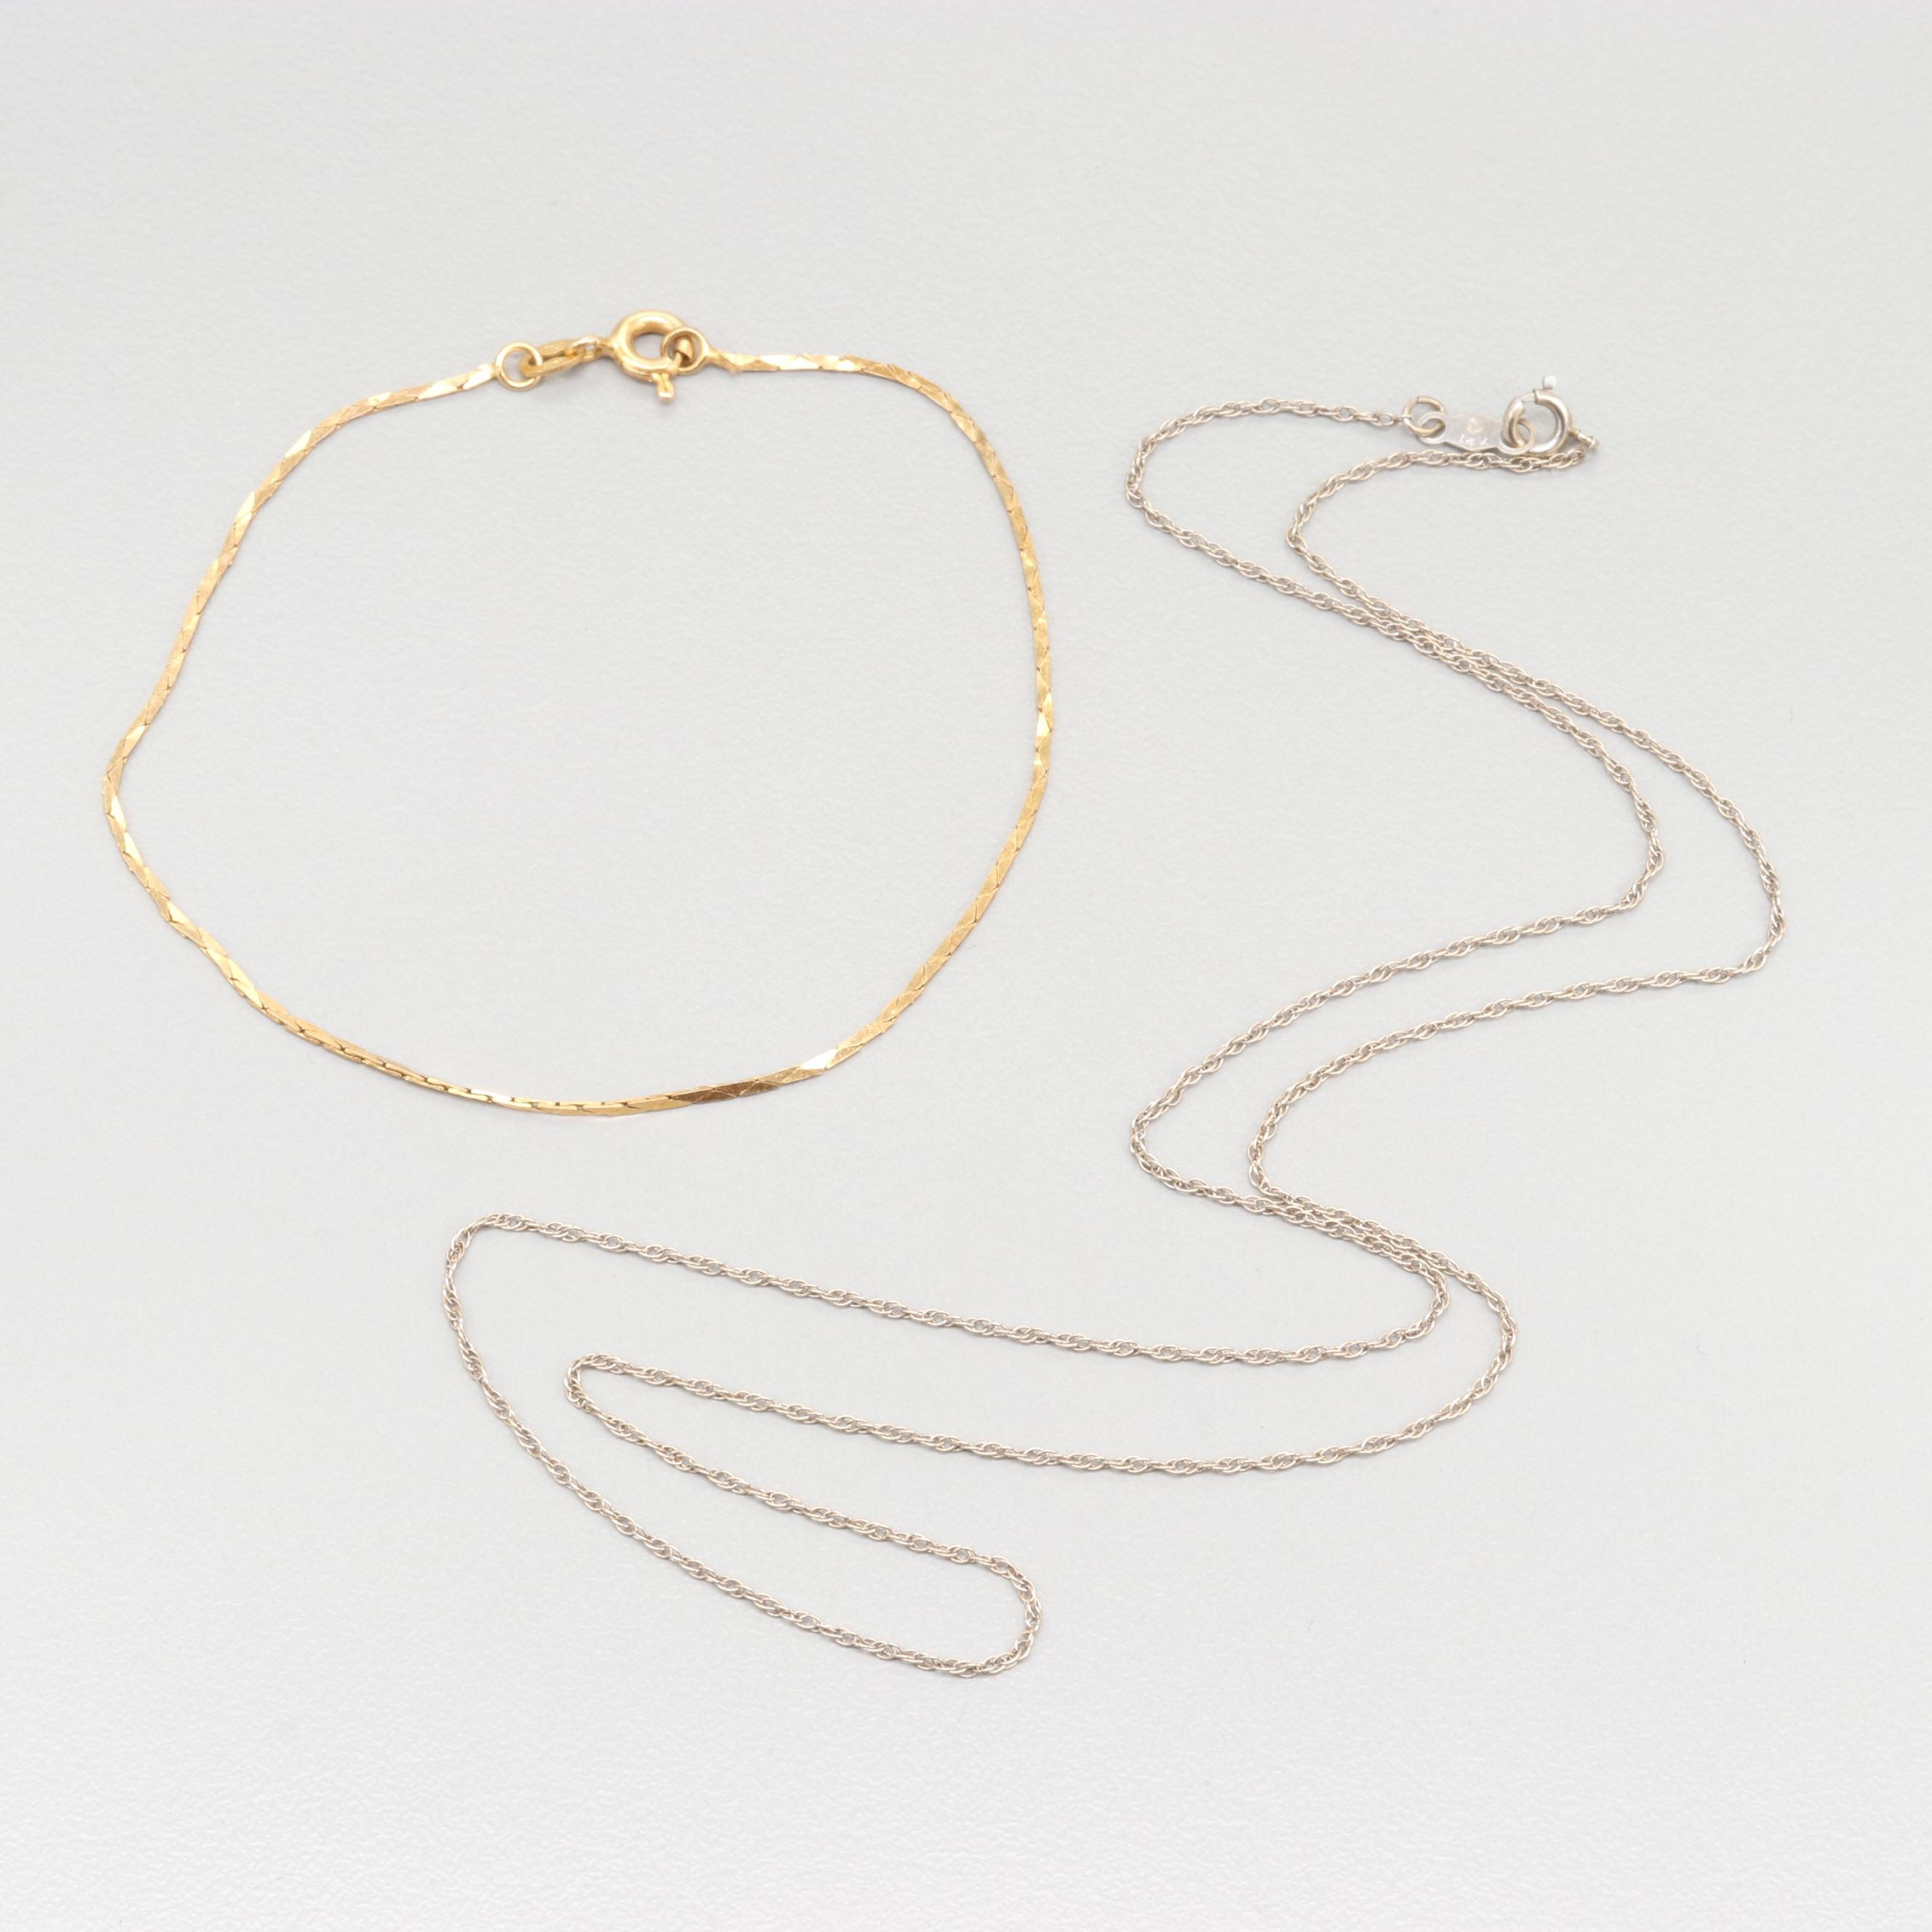 14K White Gold Rope Link Necklace with 14K Yellow Gold Cobra Link Bracelet